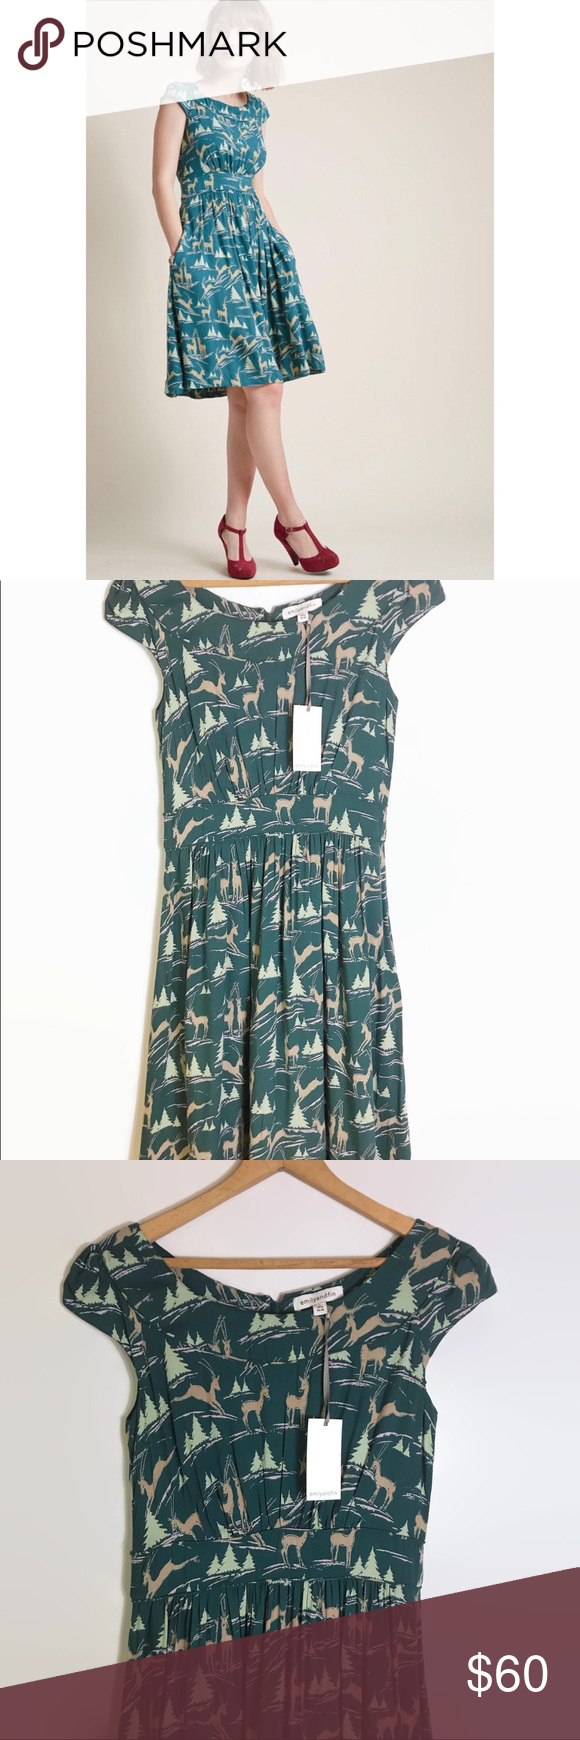 Emily and fin rachel dress nwt size small also my posh closet rh in pinterest